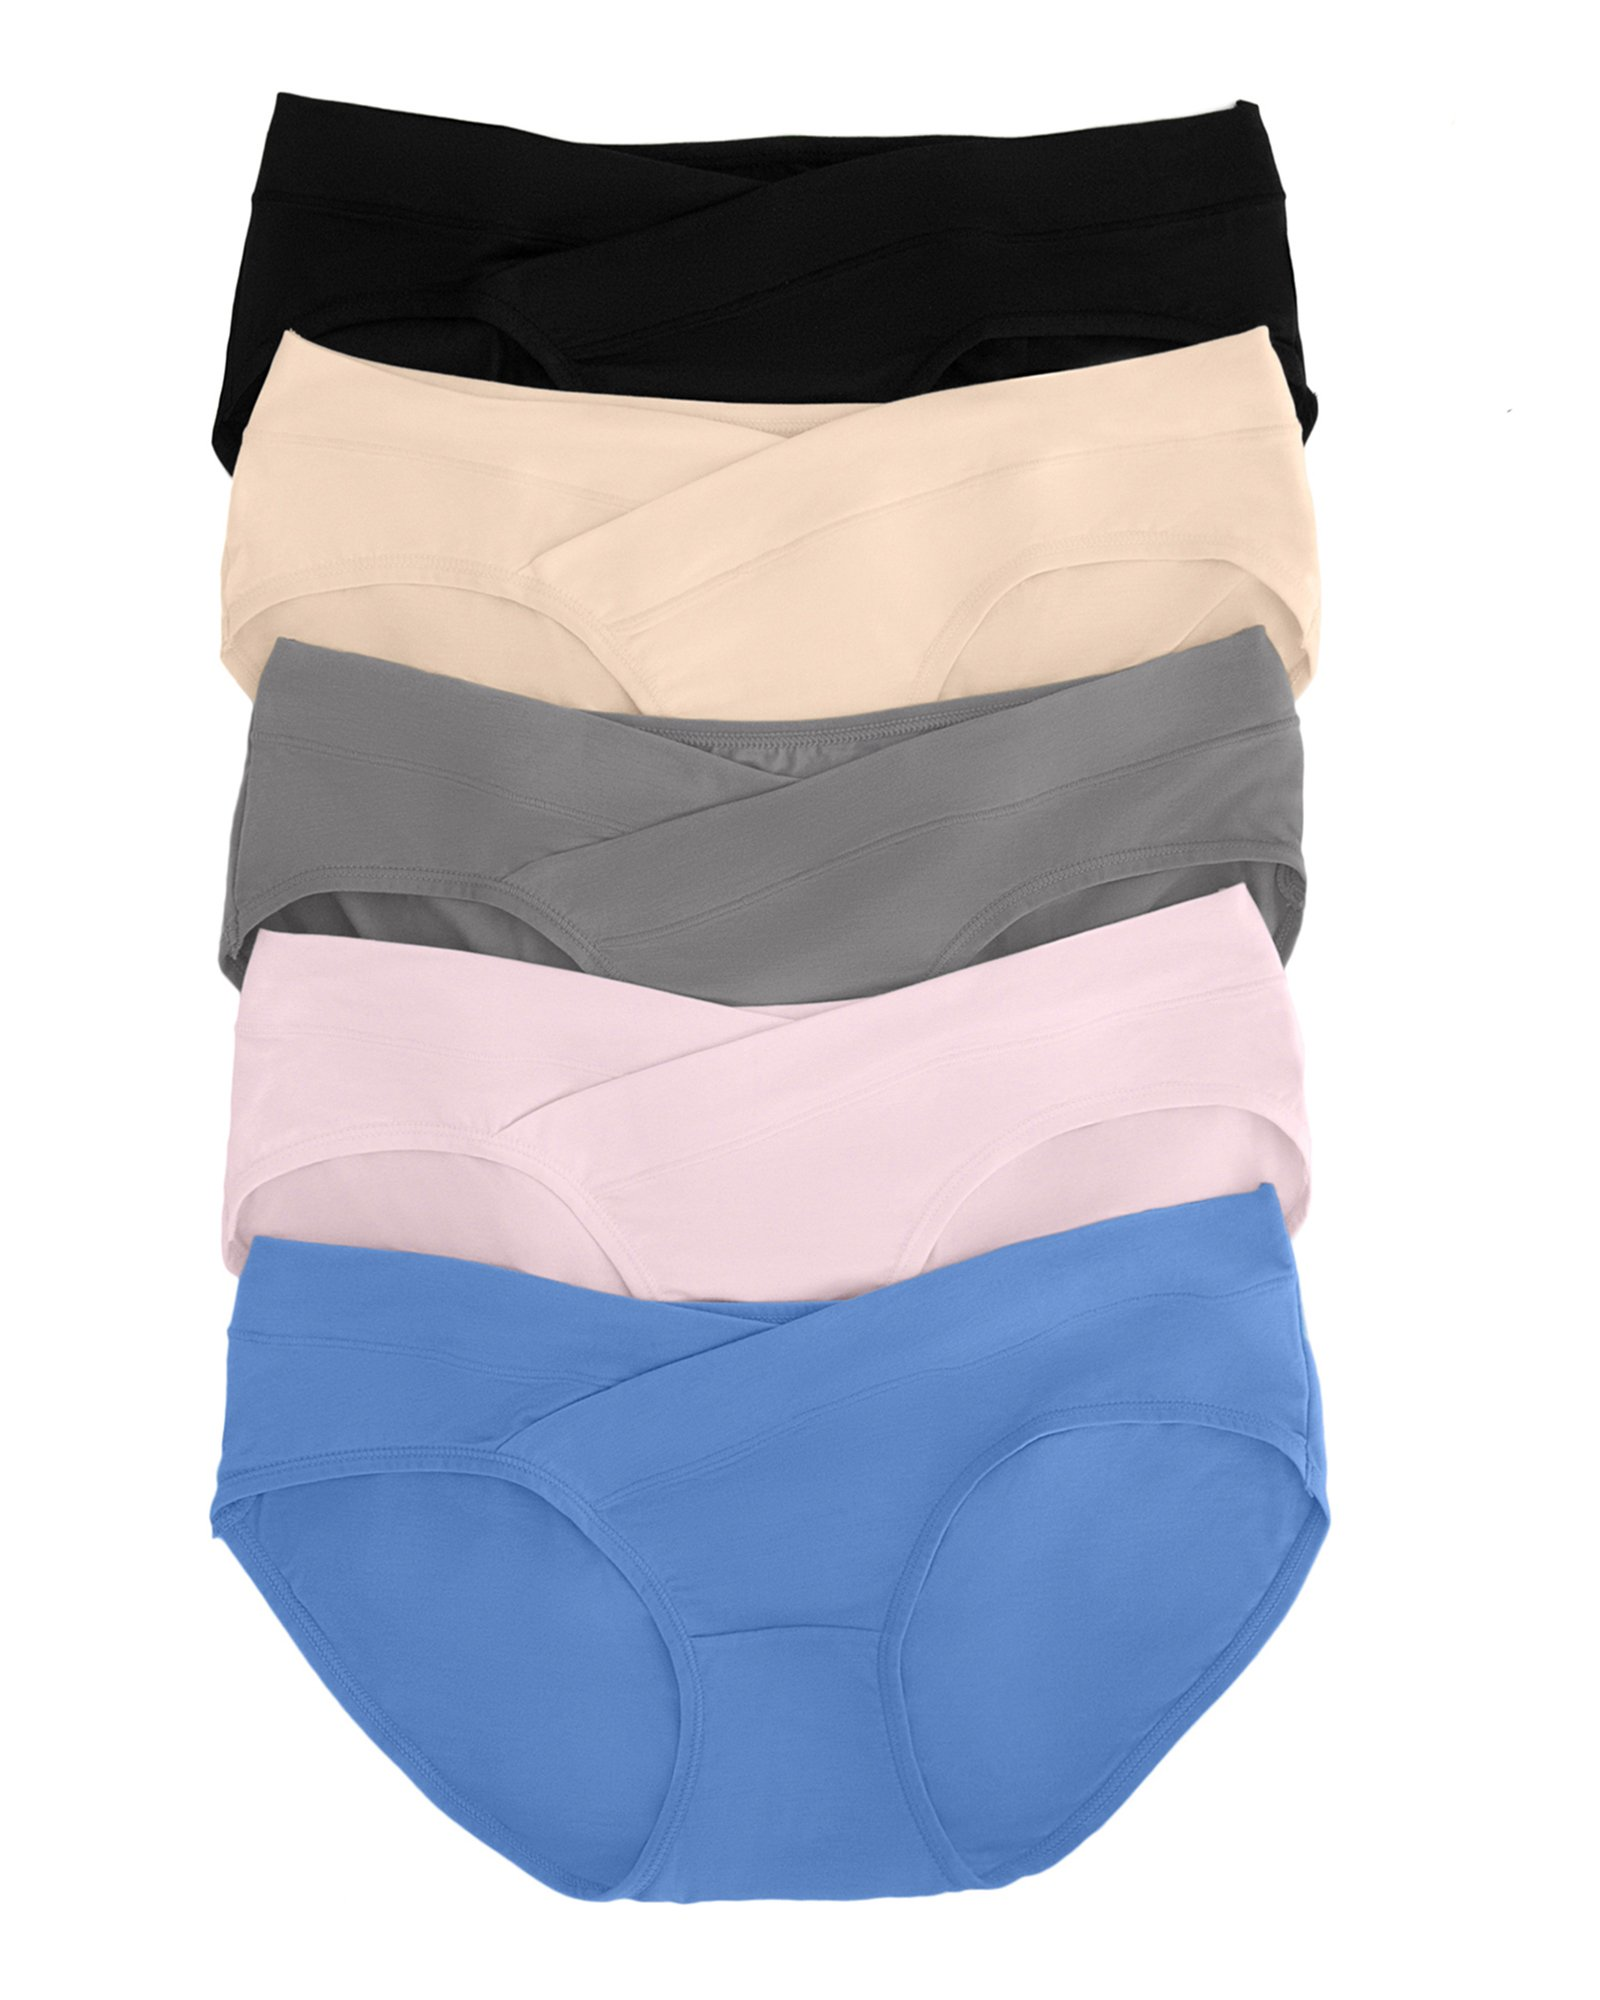 Kindred Bravely Under The Bump Seamless Maternity Underwear/Pregnancy Panties - Bikini (Large Assorted, 5 Pack) by Kindred Bravely (Image #8)